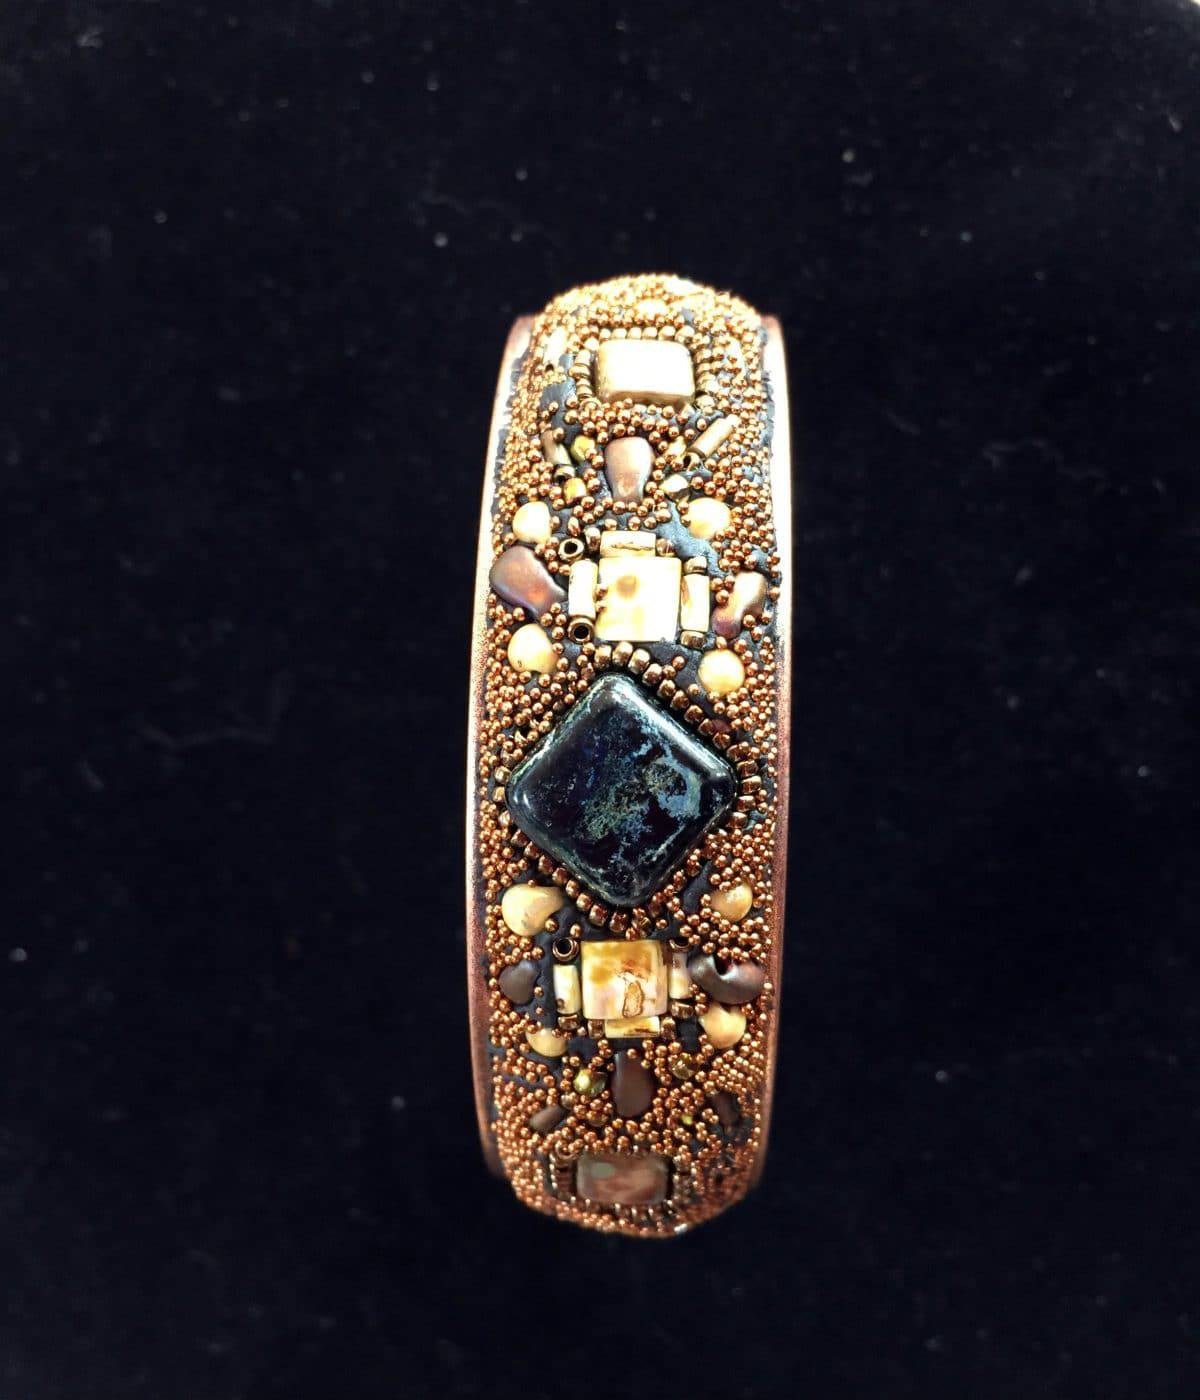 Copper and Black Mosaic Channel Cuff Bracelet